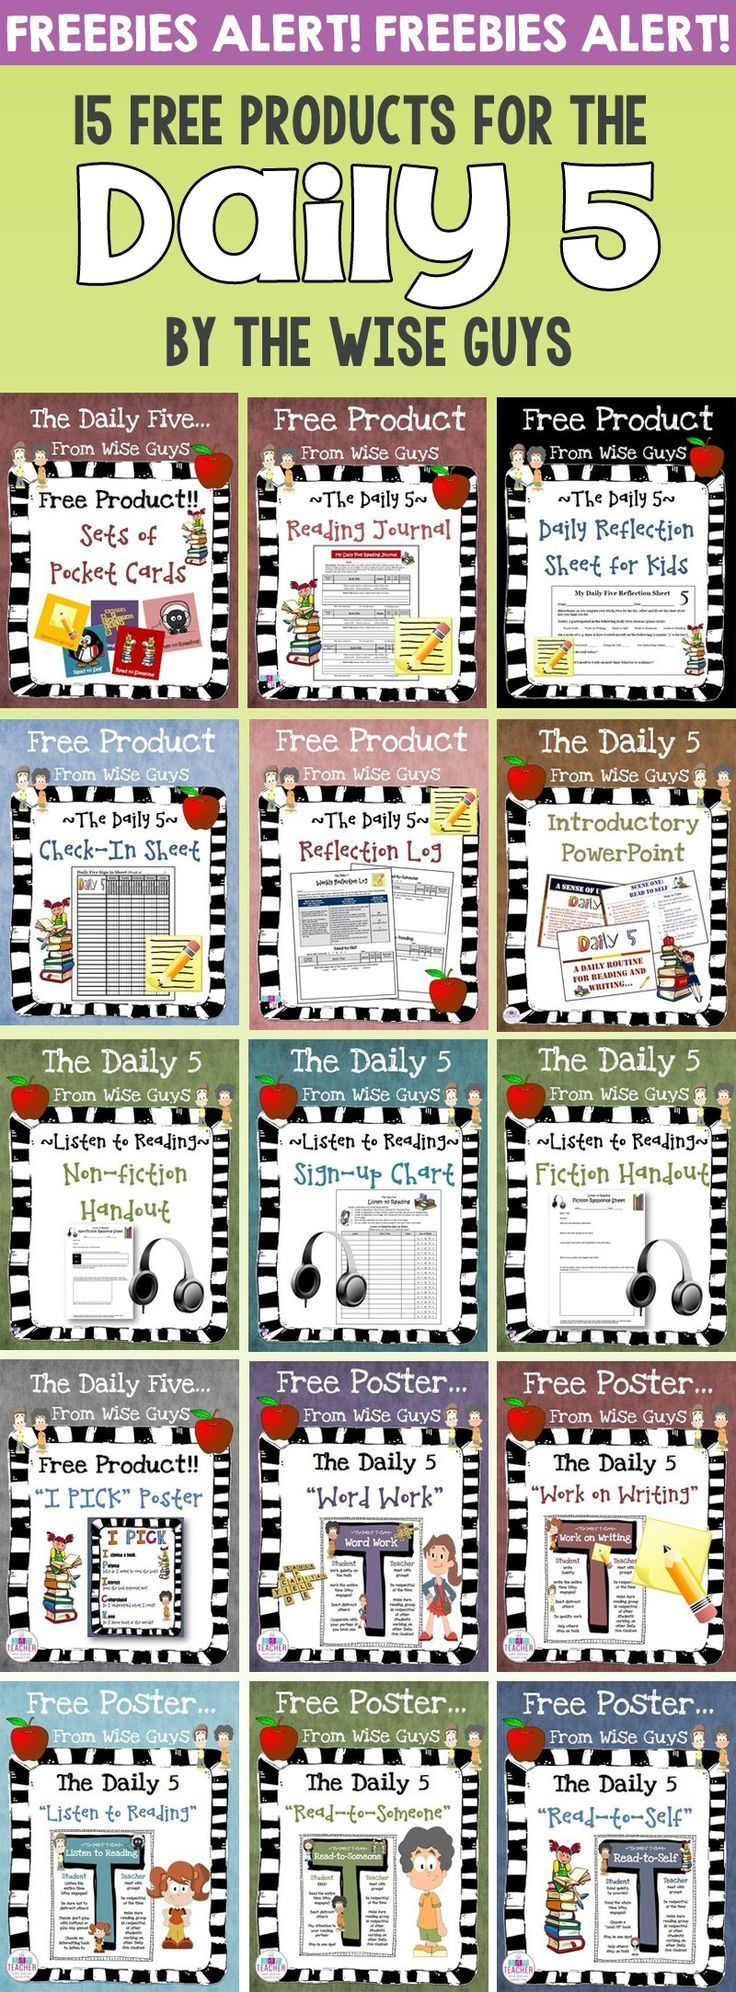 Here are 15 FREE Daily 5 Resources to use in your classroom with your intermediate grade students. Click through now to see all the great freebies for 3rd, 4th, 5th, and 6th grade classroom or home school students! {third, fourth, fifth, sixth graders, freebie, upper elementary}